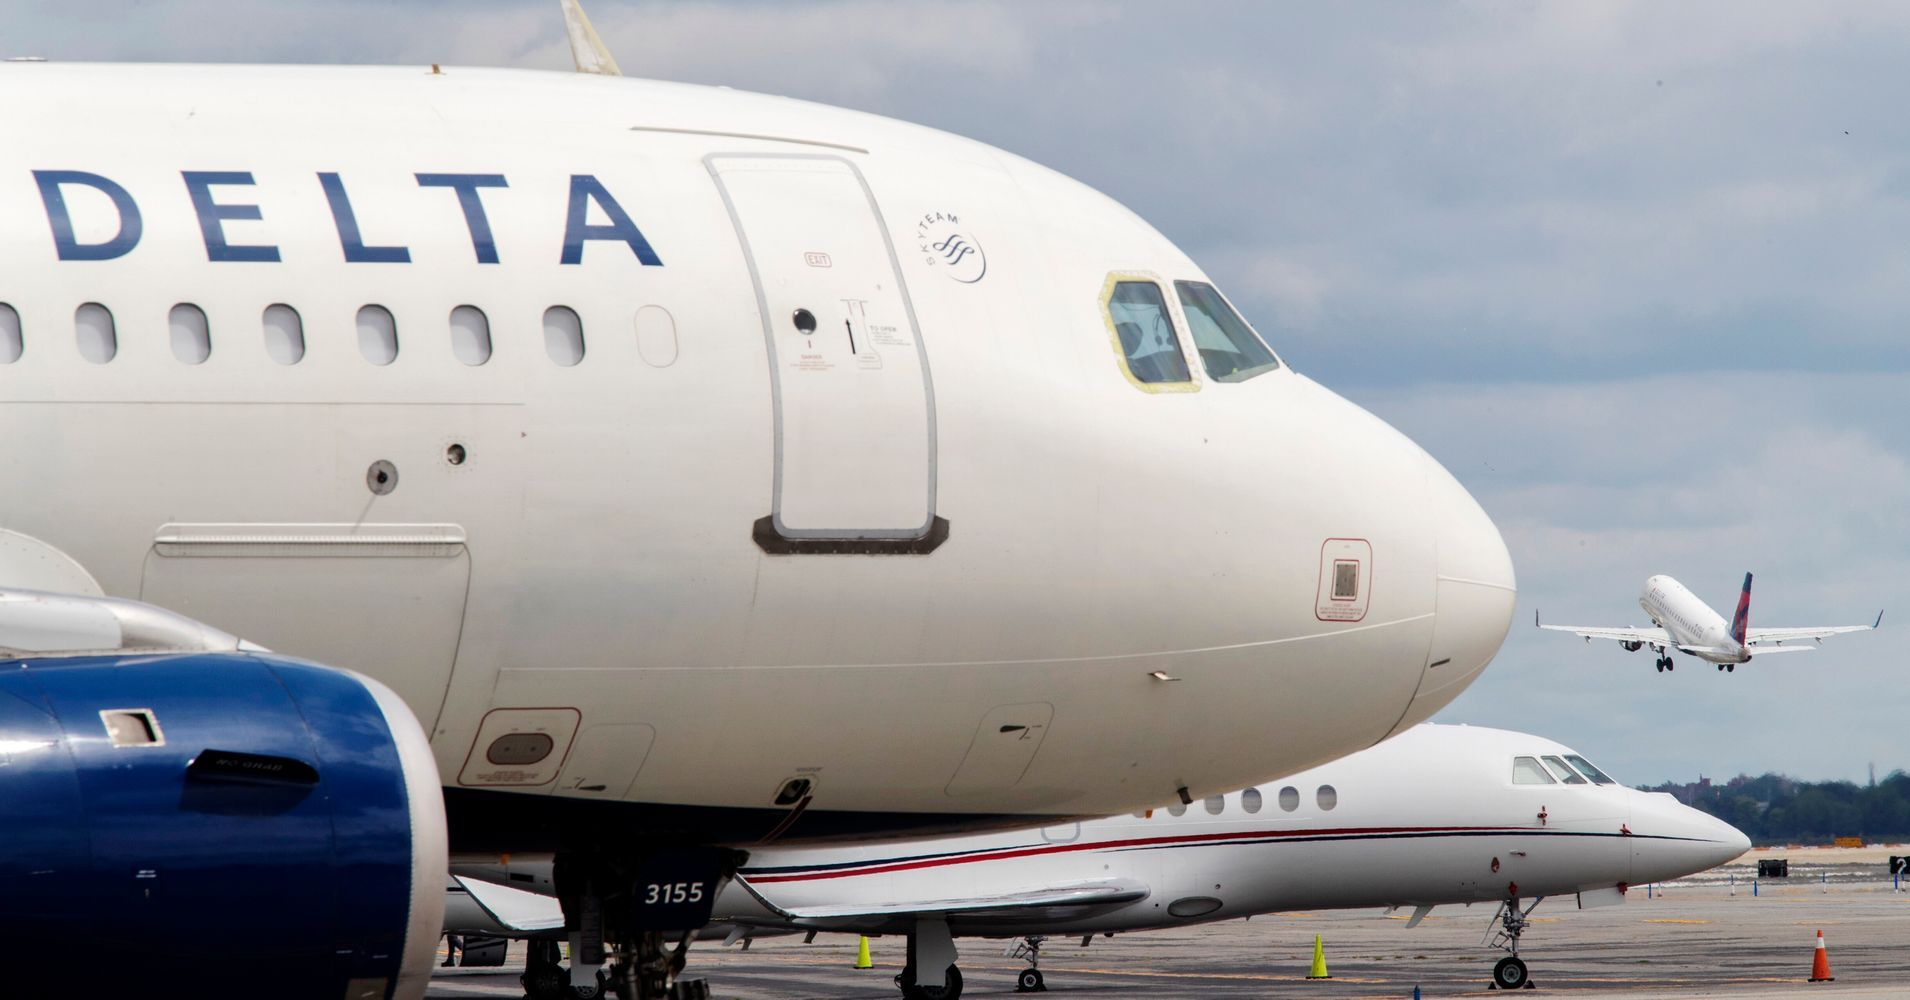 Delta Tried To 'Trap' Its Own Flight Attendants On A Plane